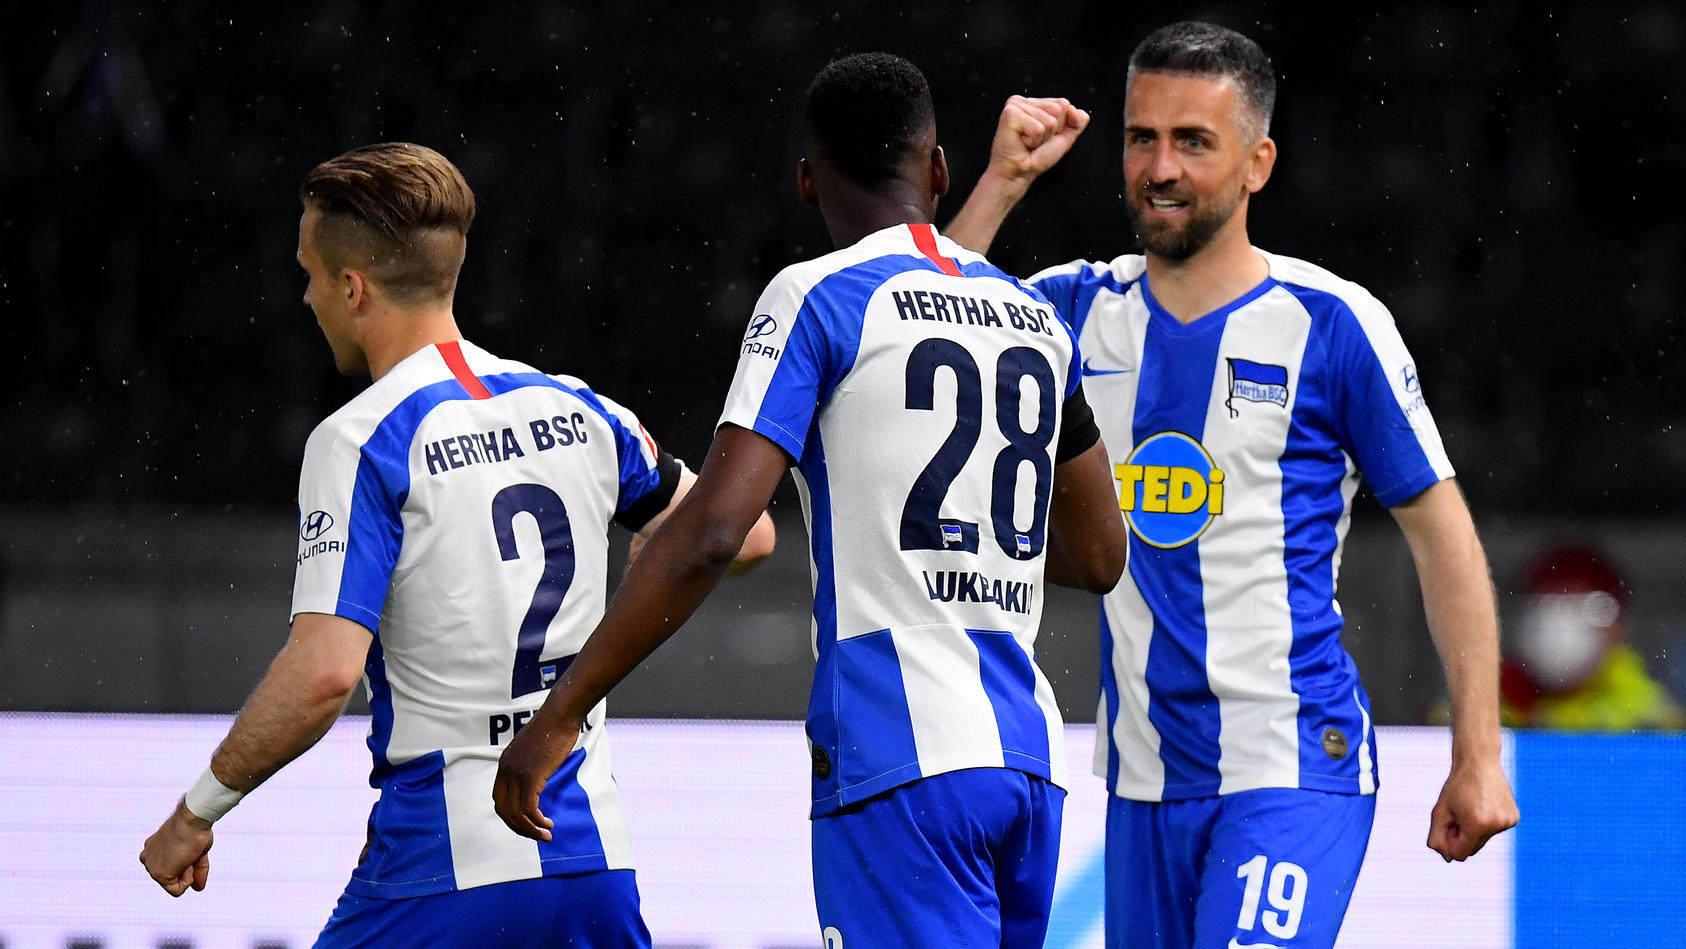 Hertha BSC v 1. FC Union Berlin - Bundesliga